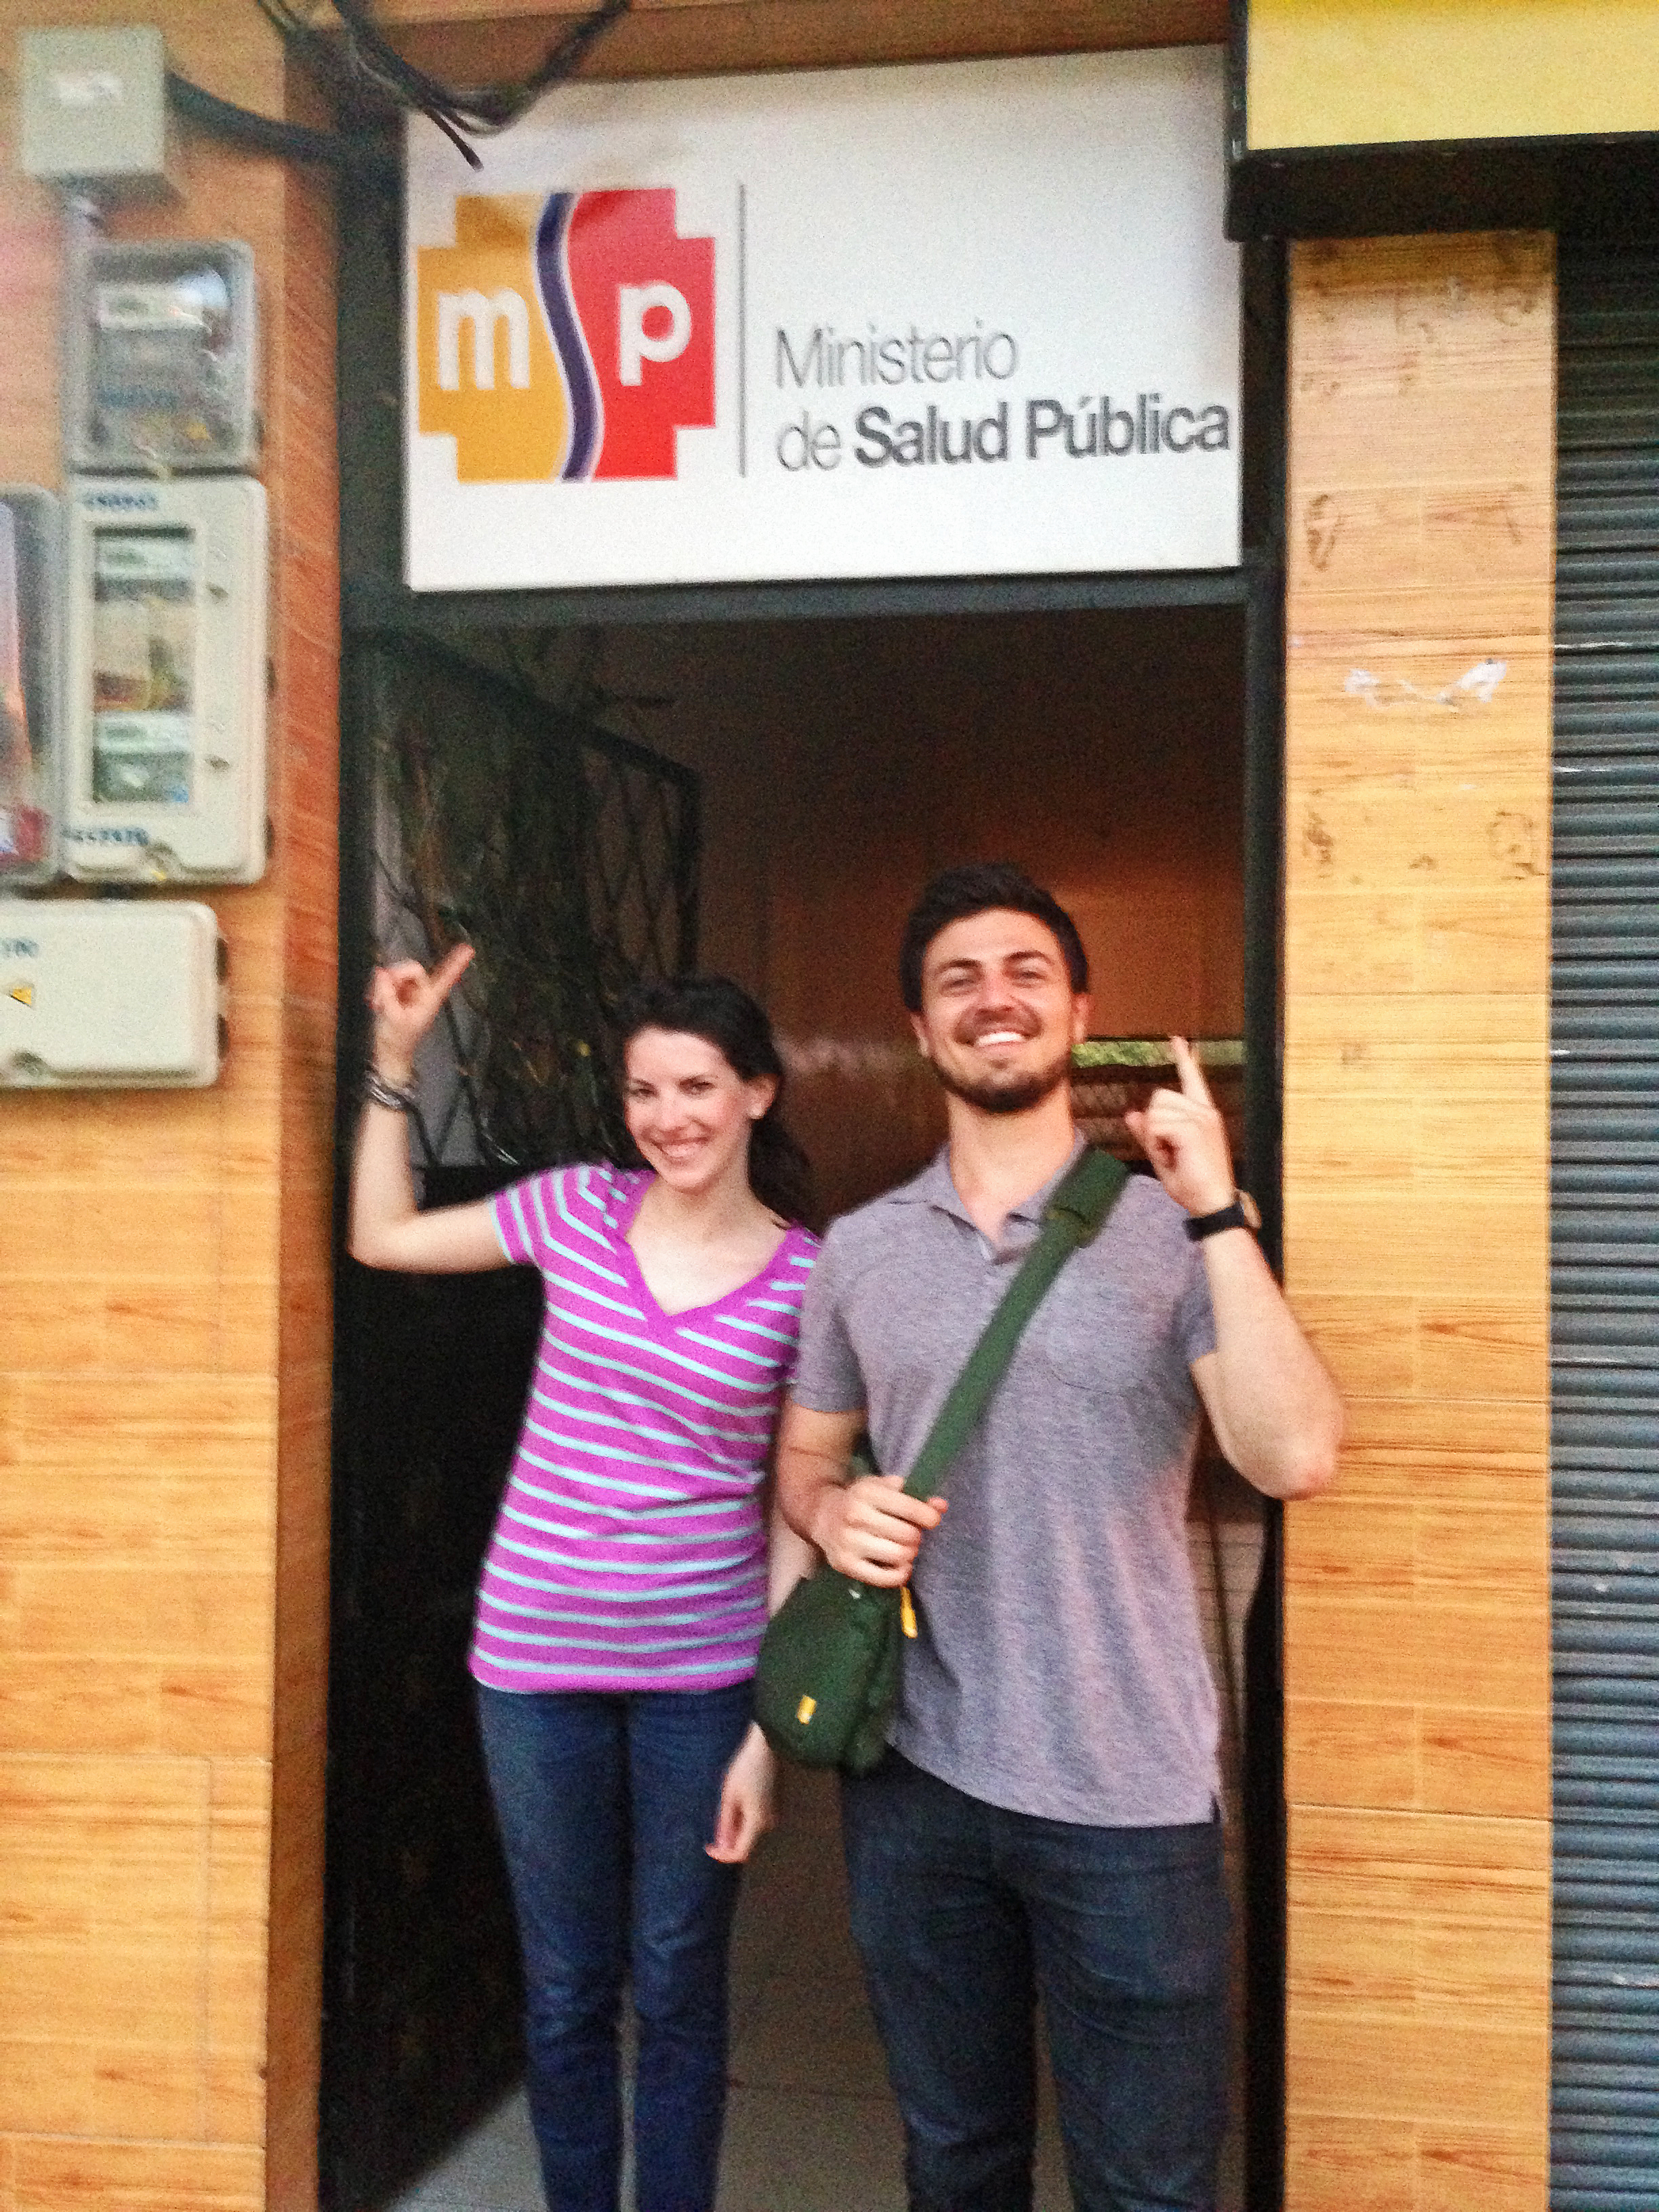 Lauren, our founder and President, and Alex, our Ecuador Project Coordinator, were really psyched after a very successful first meeting with the regional Ecuadorian Ministry of Public Health last week! Photo taken: June 12, 2013.